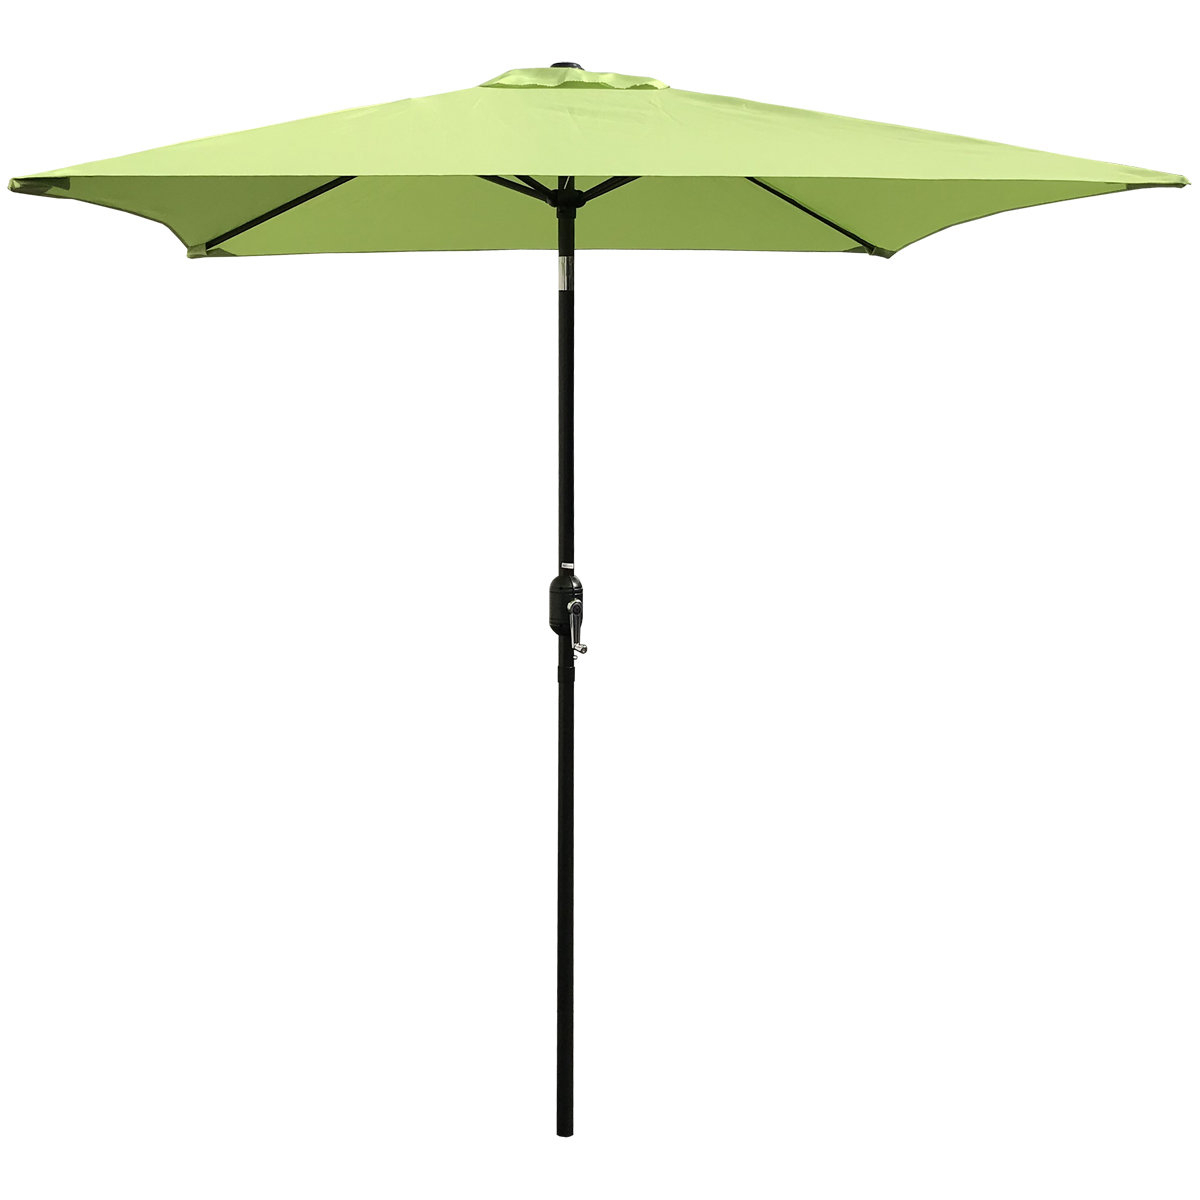 Bradford Patio Market Umbrellas Regarding Well Known Bradford Patio 6.5' Square Market Umbrella (Gallery 3 of 20)